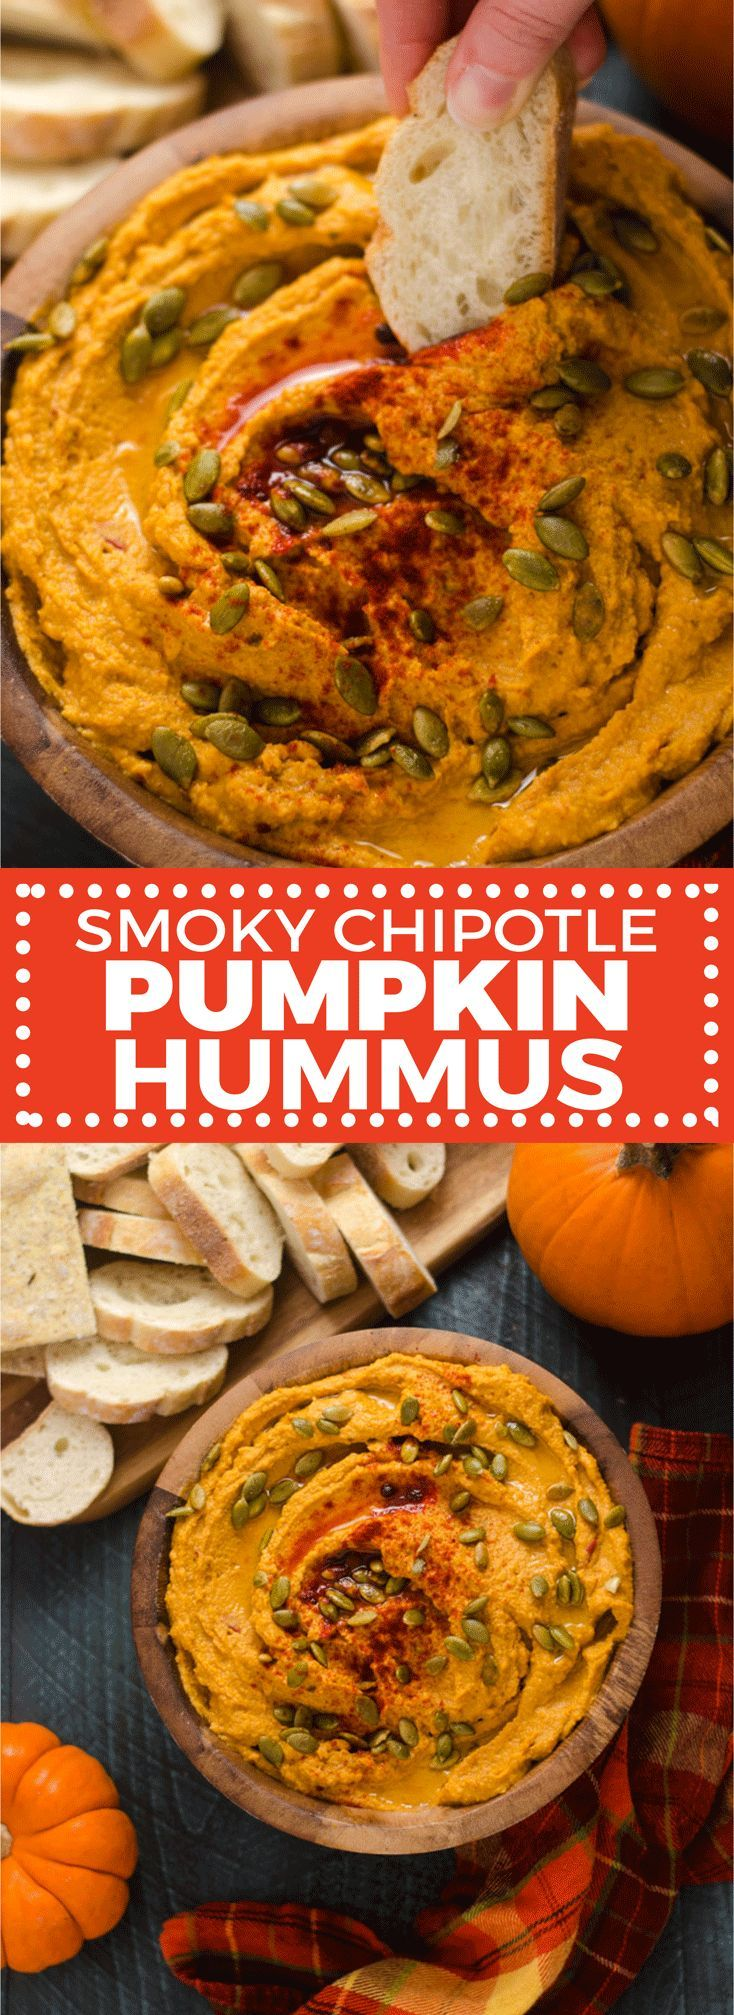 Smoky Chipotle Pumpkin Hummus. This quick, easy, and flavorful fall appetizer is perfect for party food or a fall snack.